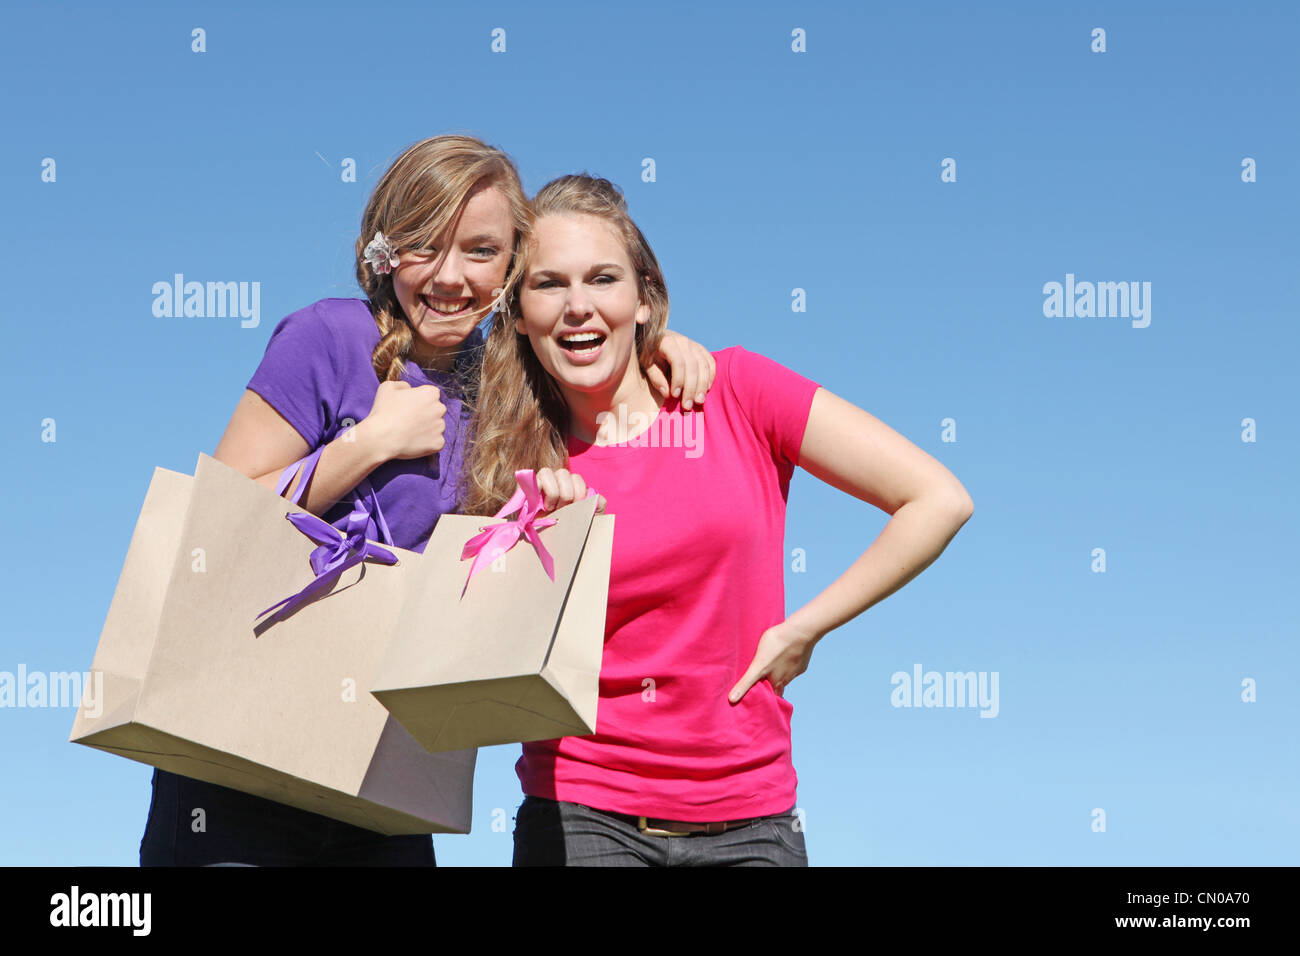 girl teenagers happy shopping with bag from recycled paper - Stock Image